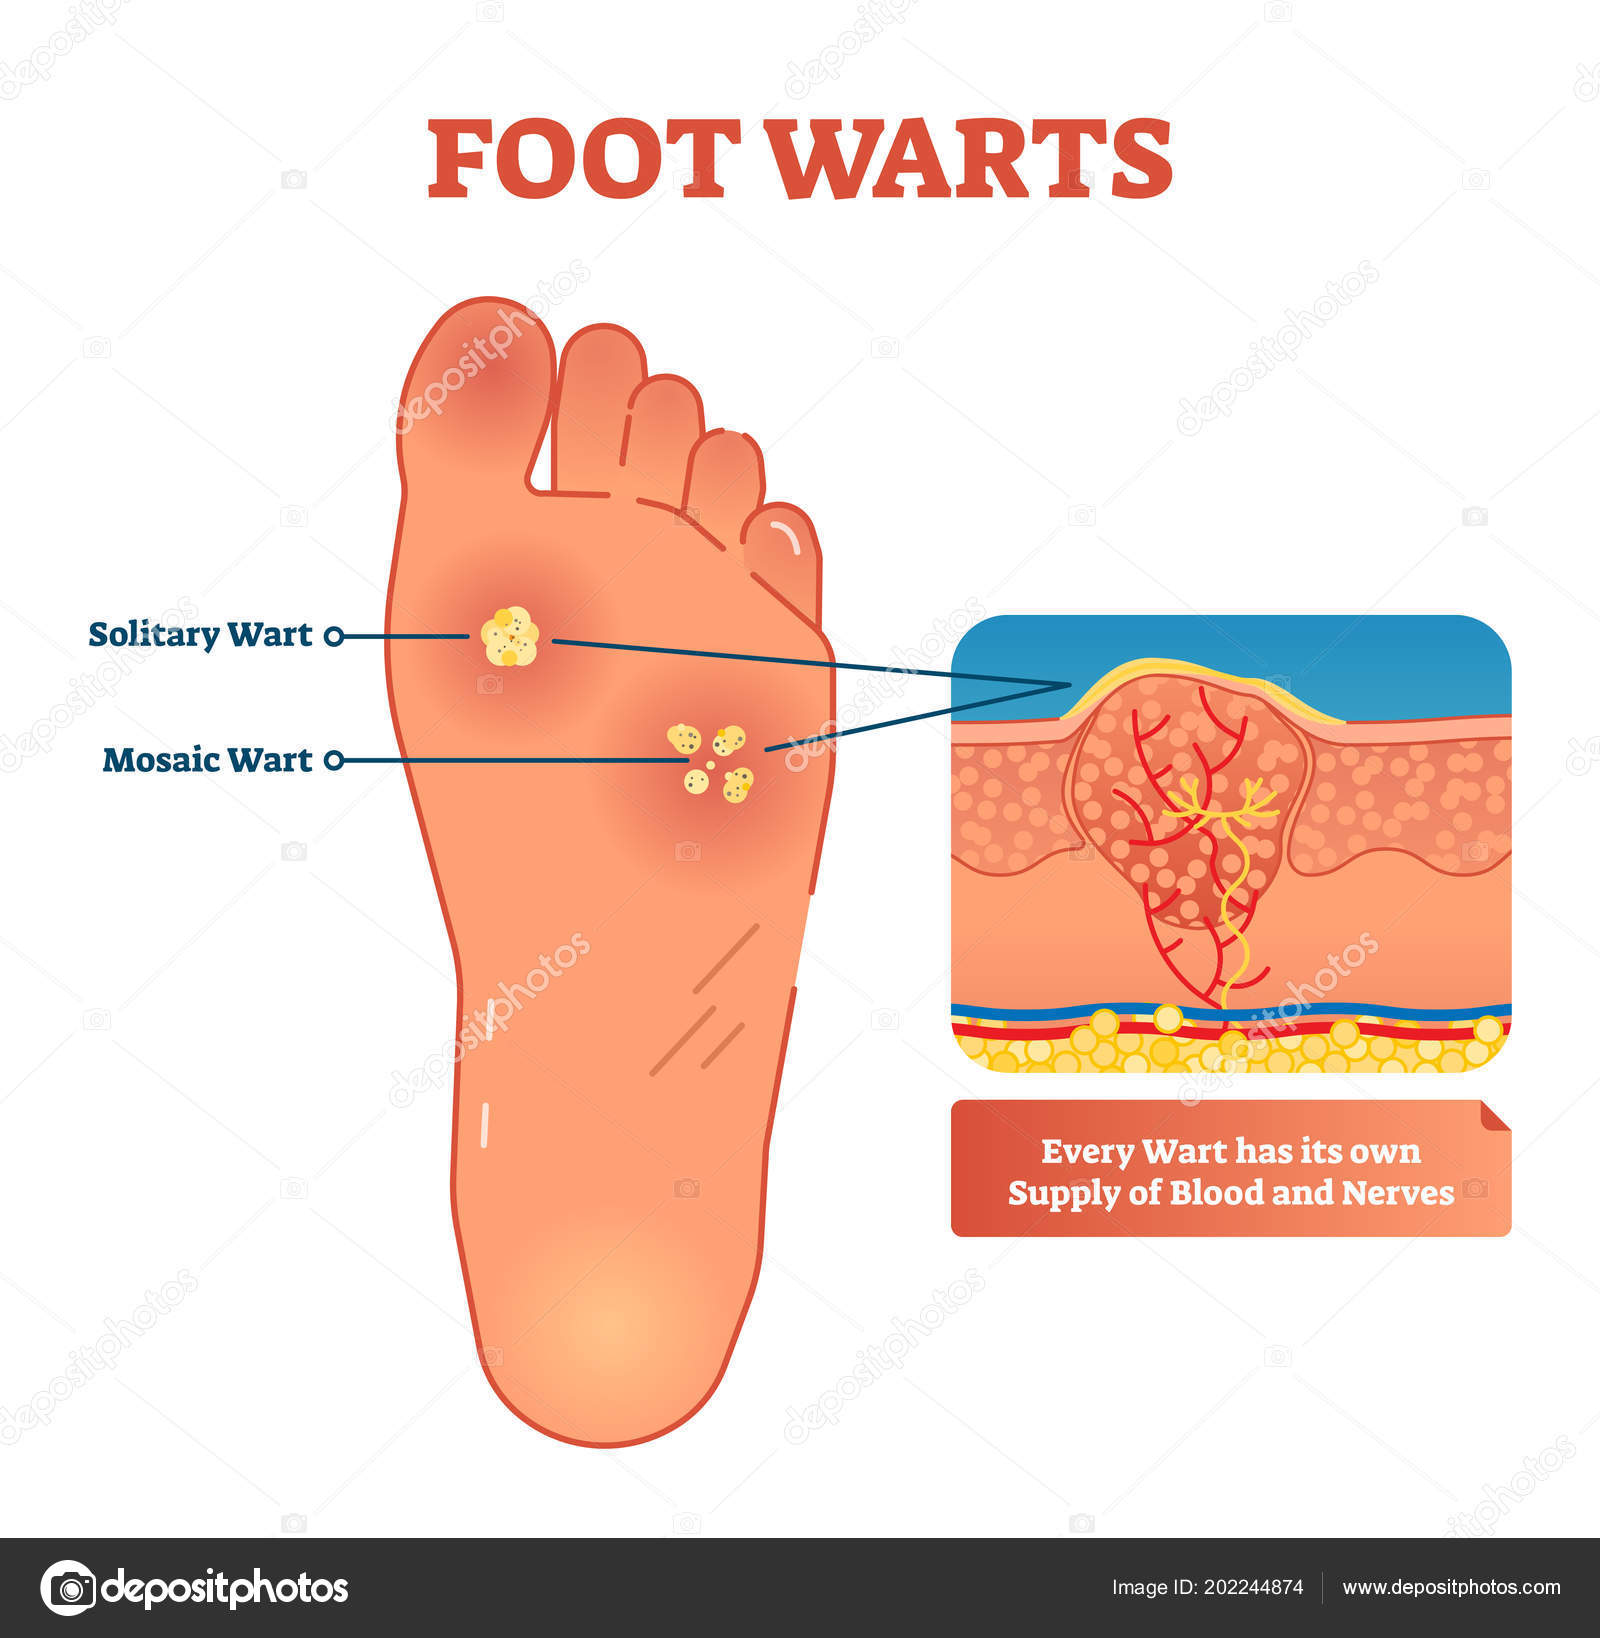 hight resolution of vector illustration of foot warts medical scheme with both types solitary and mosaic warts close up cross section with detailed wart and its own supply